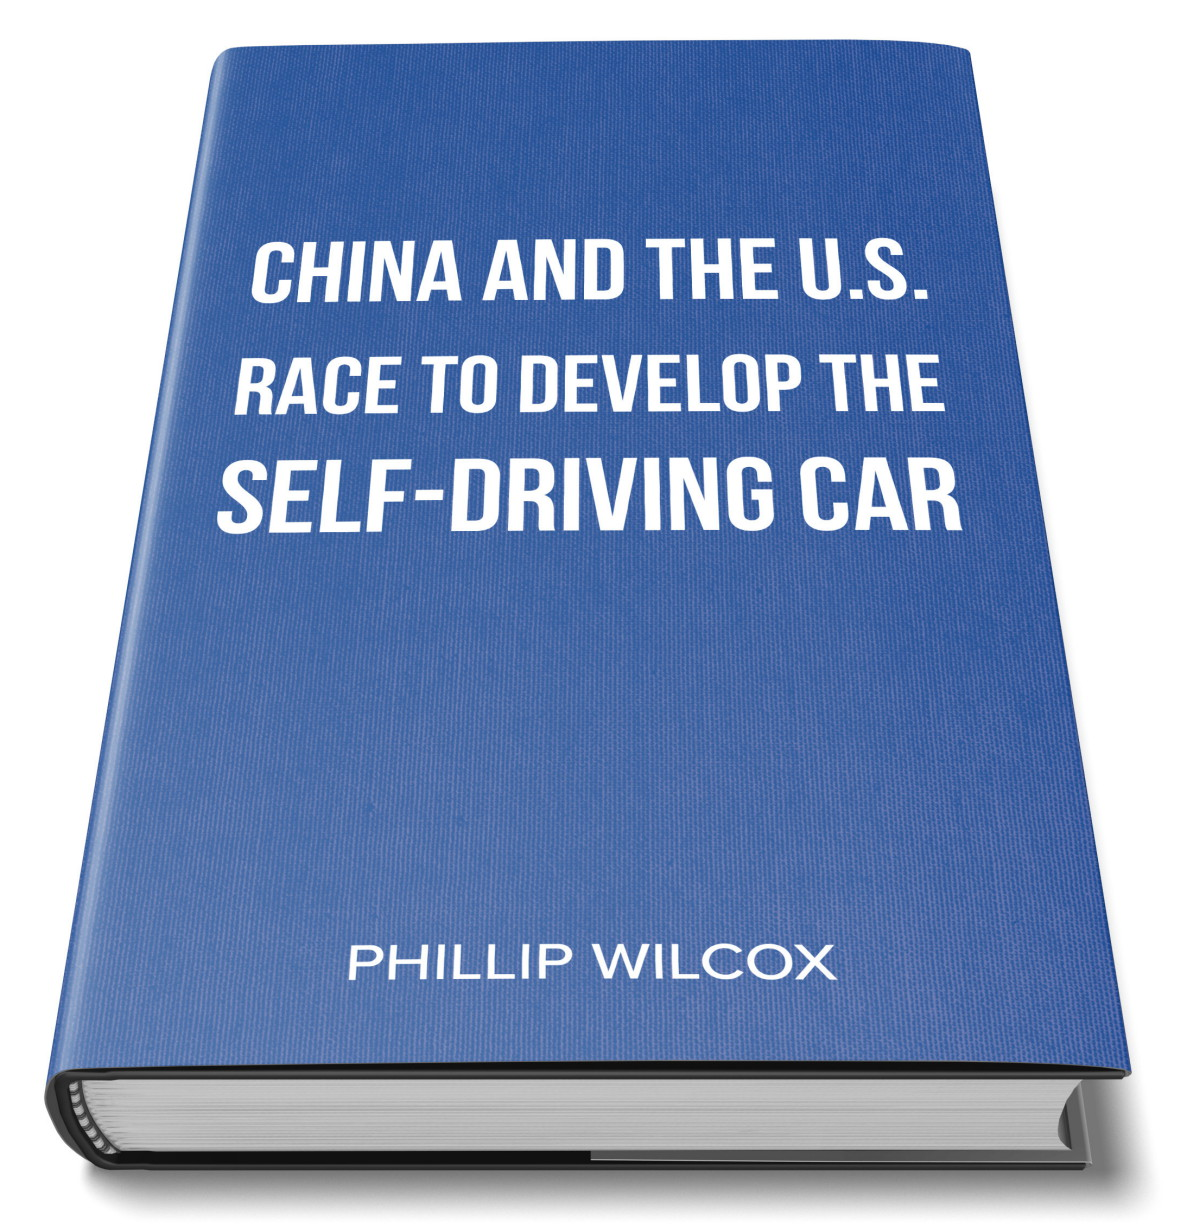 China and the U.S. Race to Develop the Self-Driving Car by Phillip Wilcox